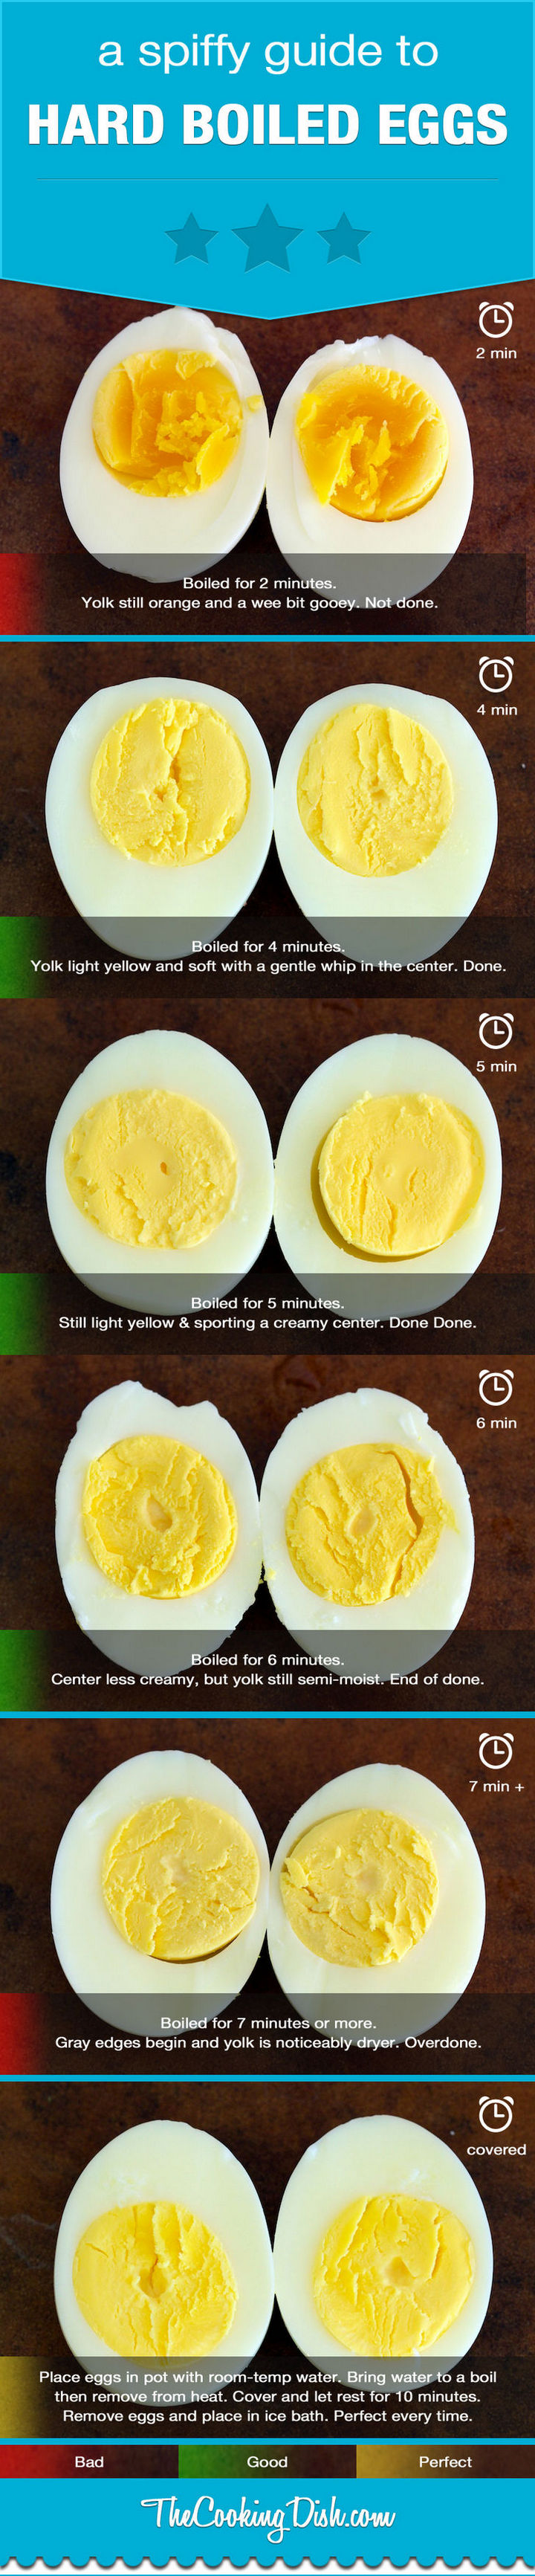 15 Kitchen Cheat Sheets - A spiffy guide to hard boiled eggs.